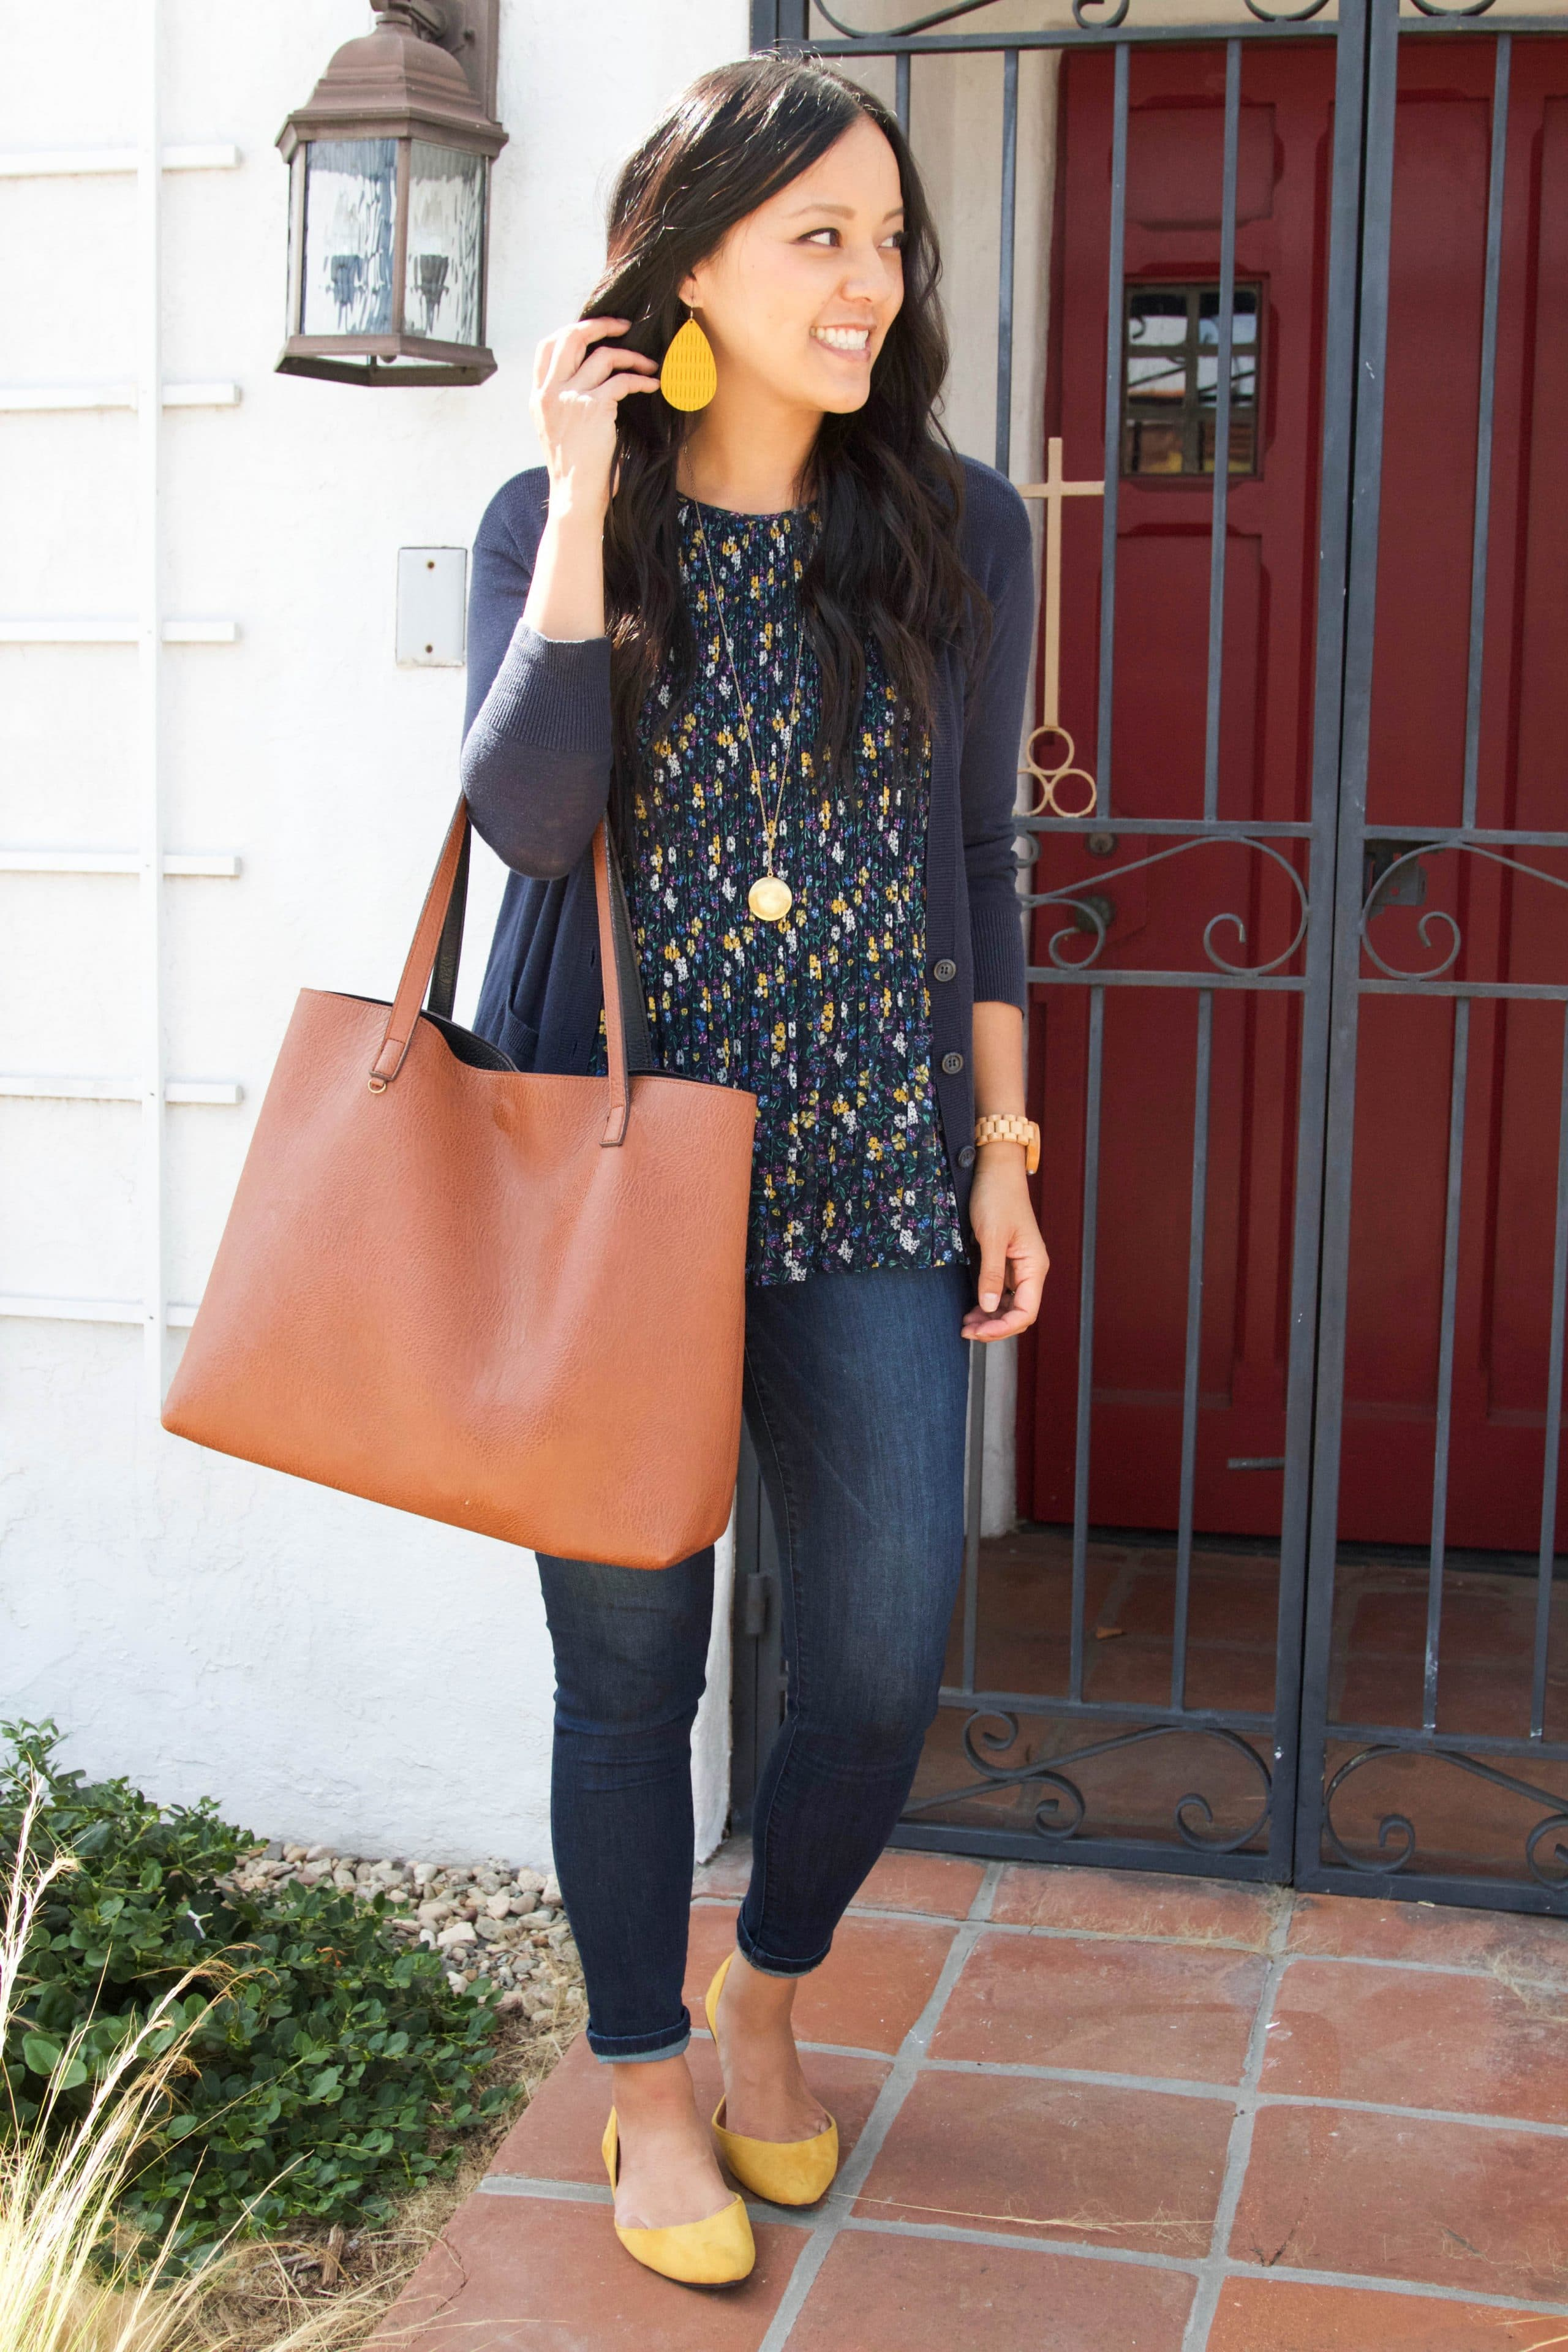 Skinnies + Tote + Floral Blouse + Navy Cardigan + Yellow Accessories